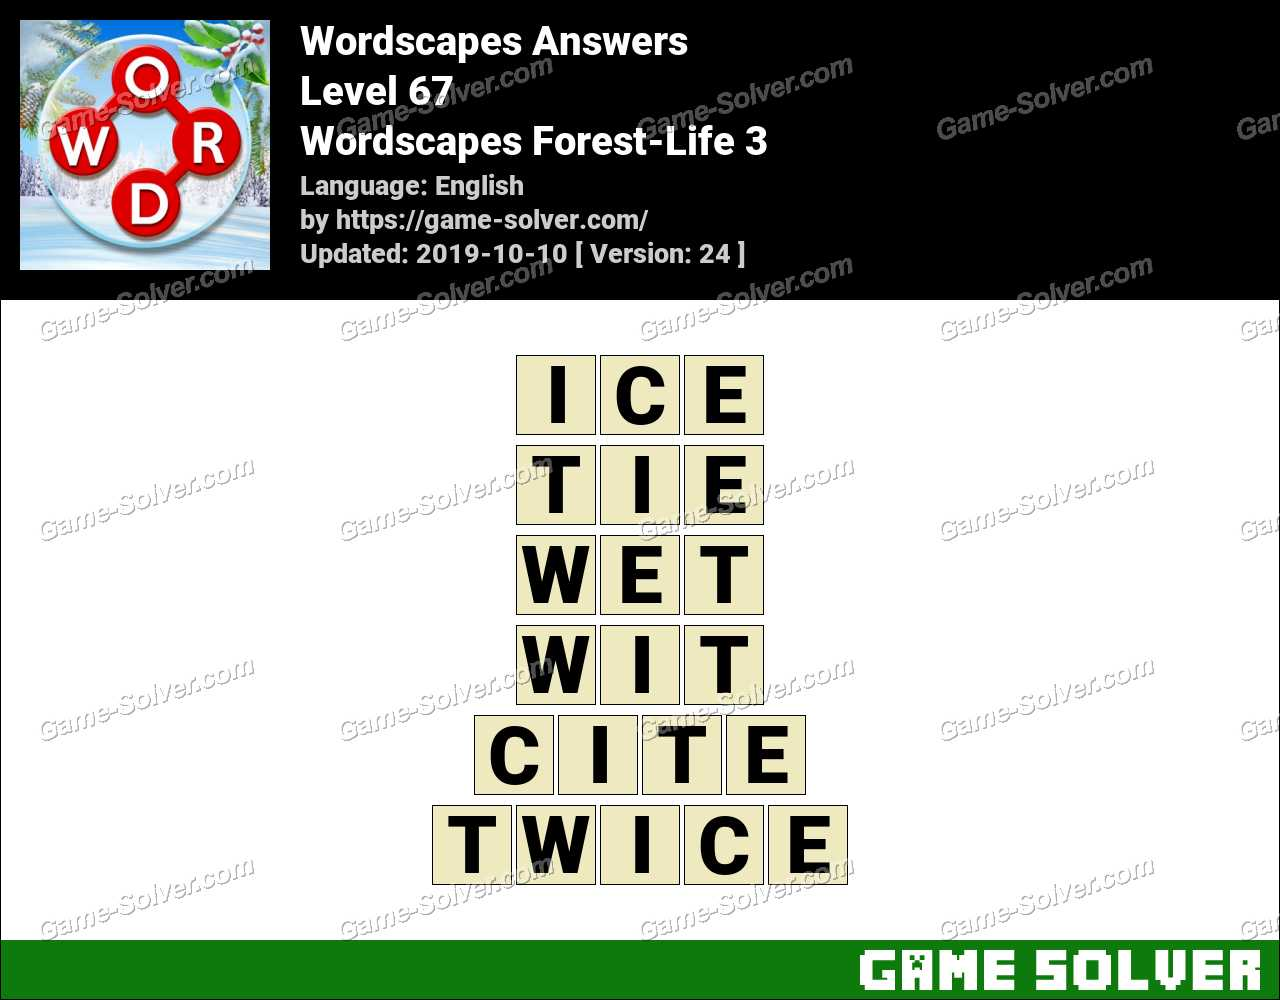 Wordscapes Forest-Life 3 Answers